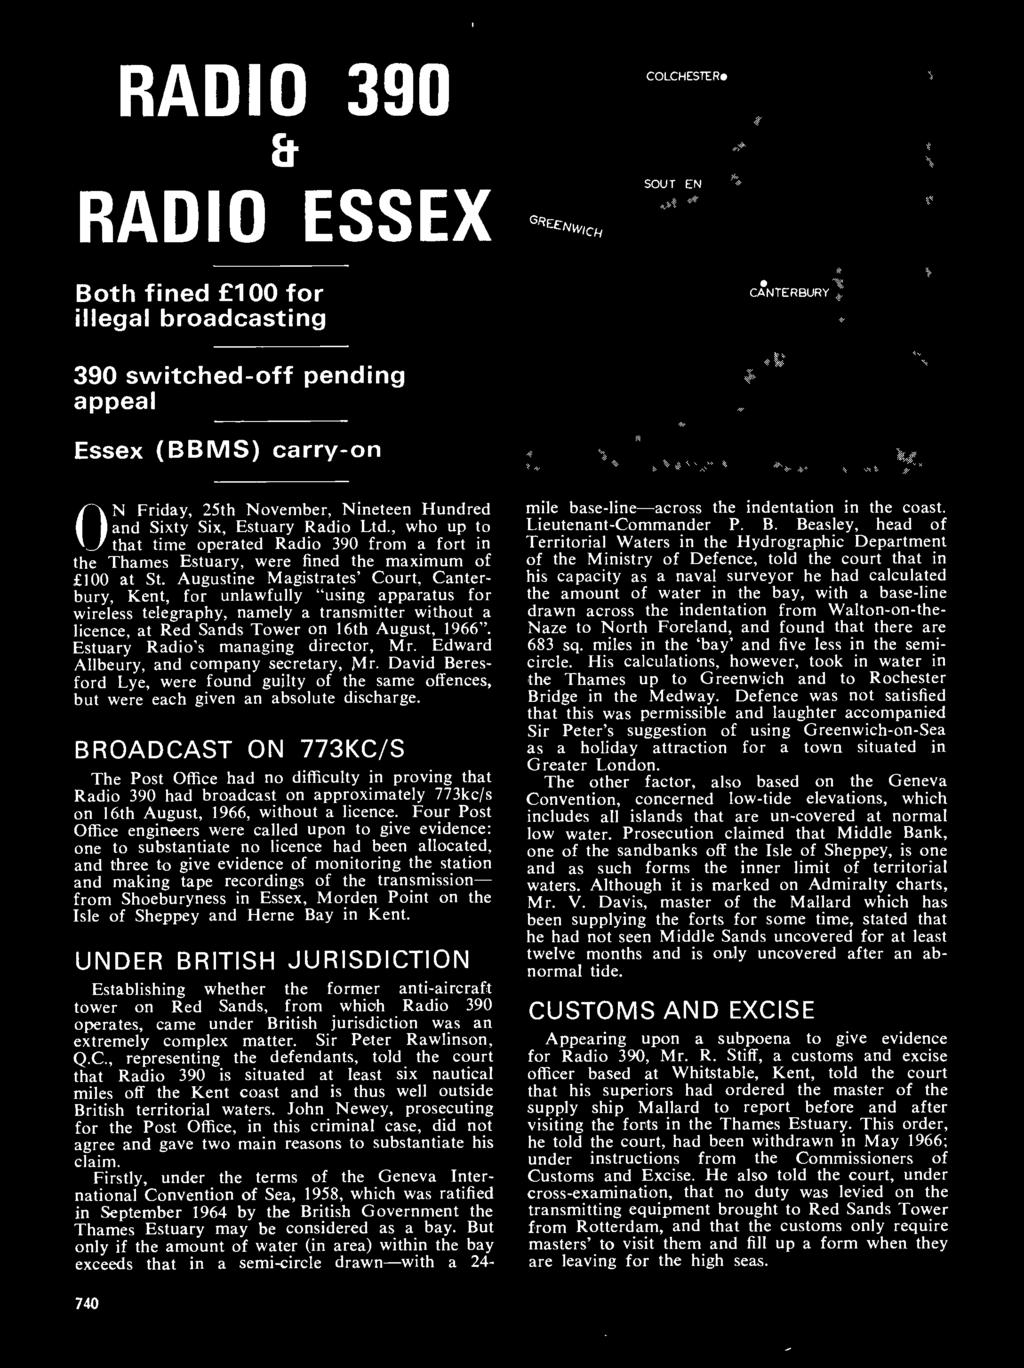 Hundred and Sixty Six, Estuary Radio Ltd., who up to that time operated Radio 390 from a fort in the Thames Estuary, were fined the maximum of 100 at St.